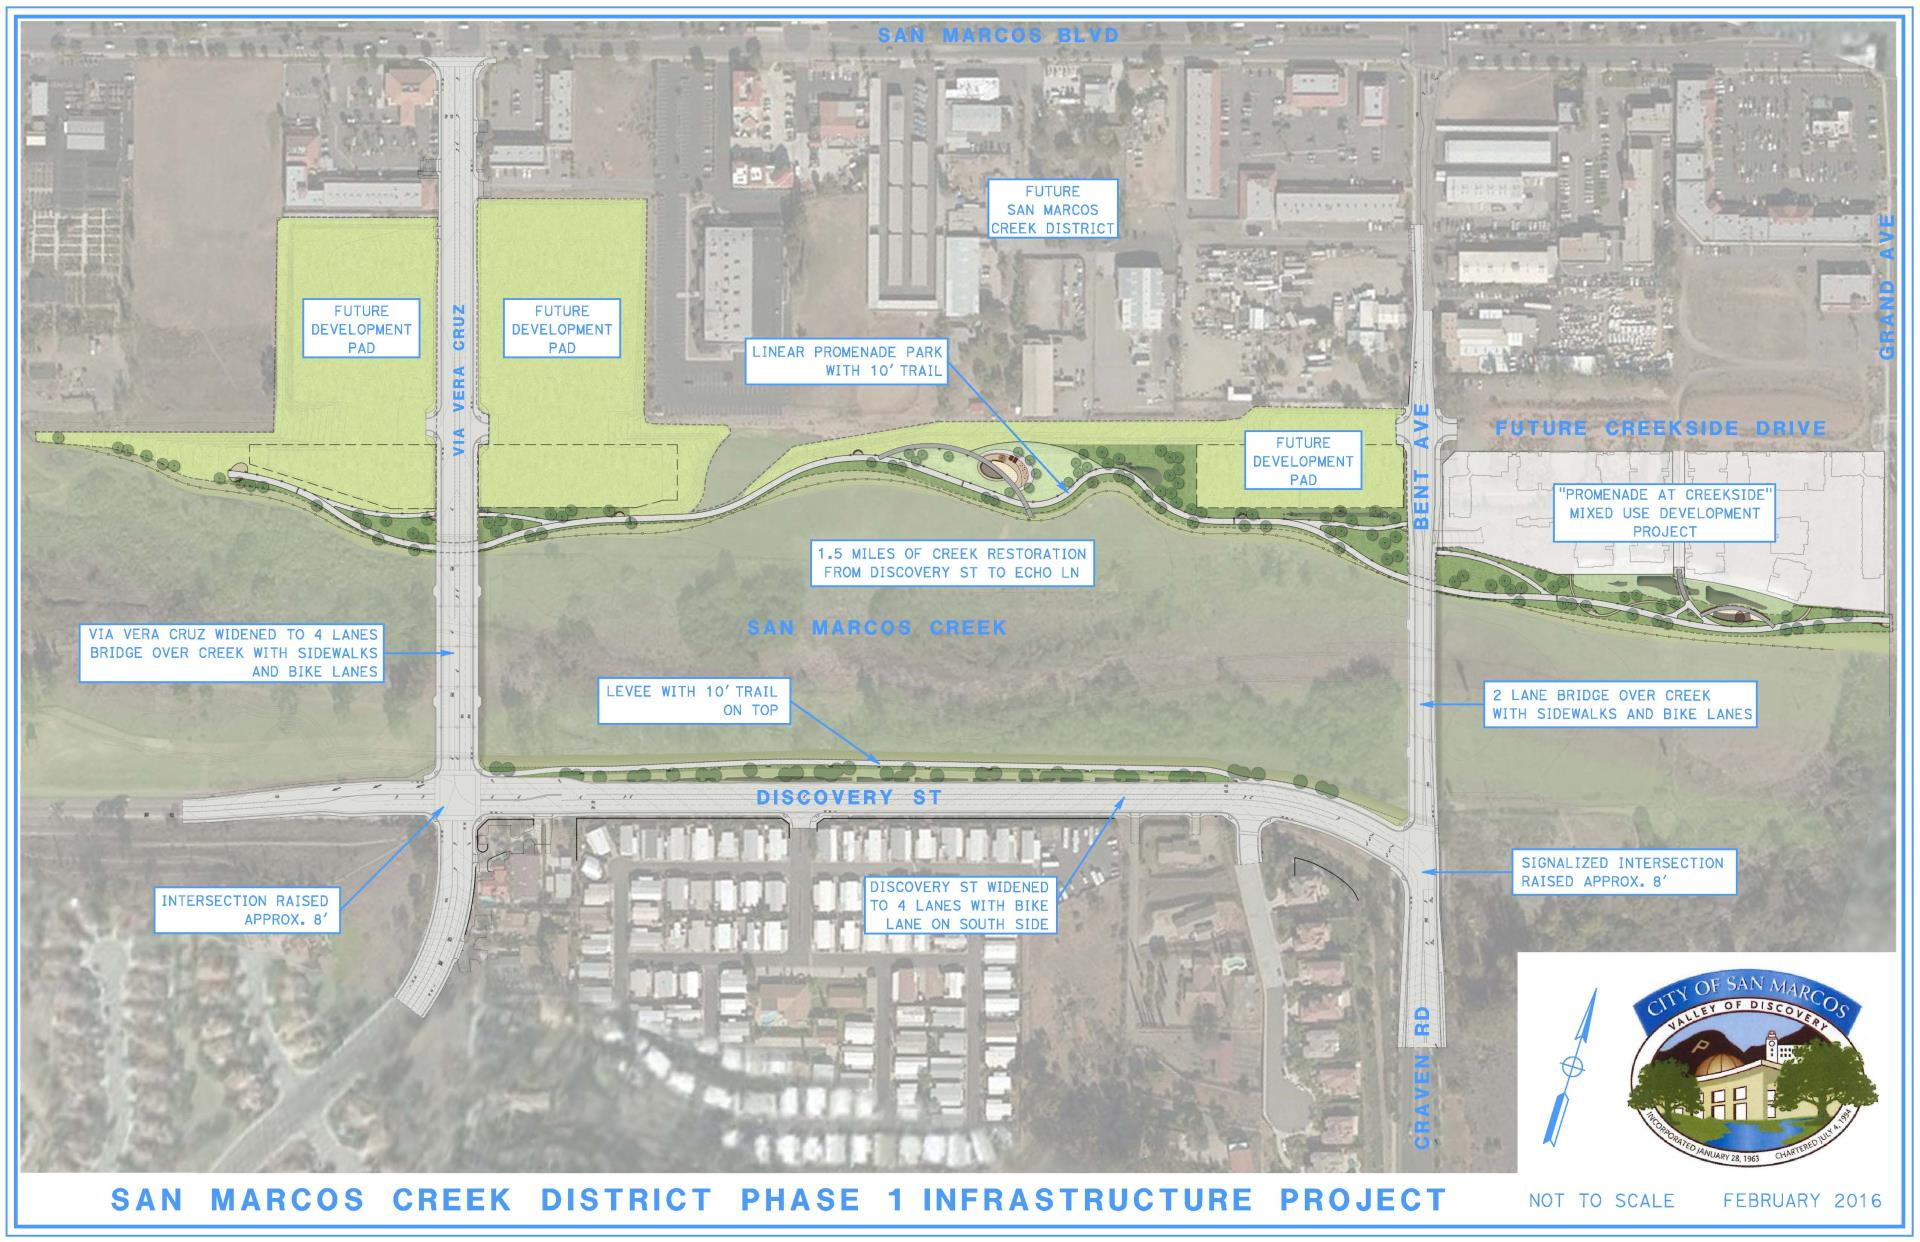 San Marcos Creek District Phase 1 Exhibit_Posted 3.22.2016